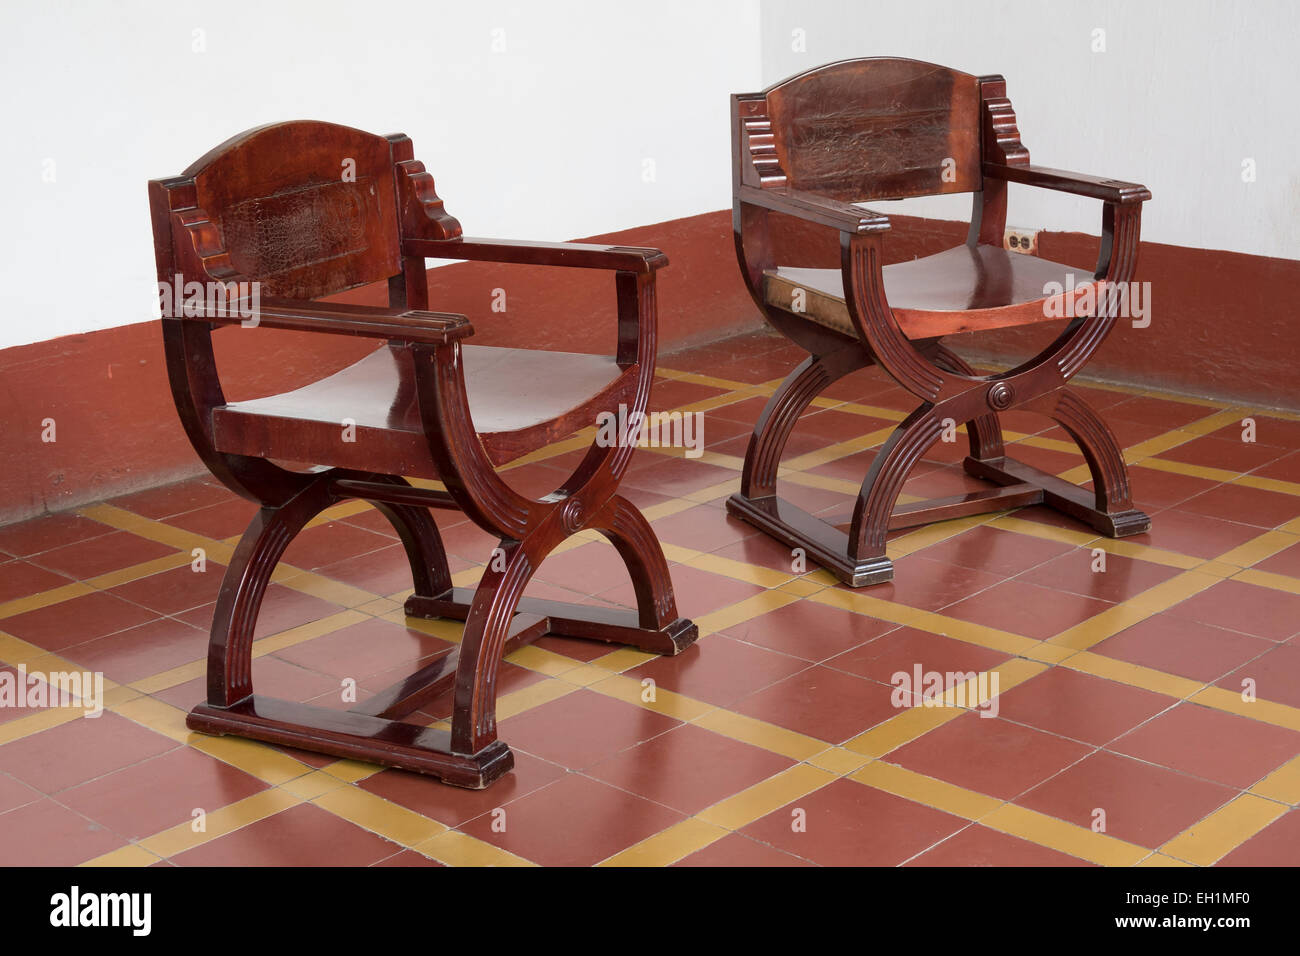 Two reproduction medieval Renaissance style chairs at the Museo de Arquitectura Colonial Trinidad Cuba. & Two reproduction medieval Renaissance style chairs at the Museo de ...